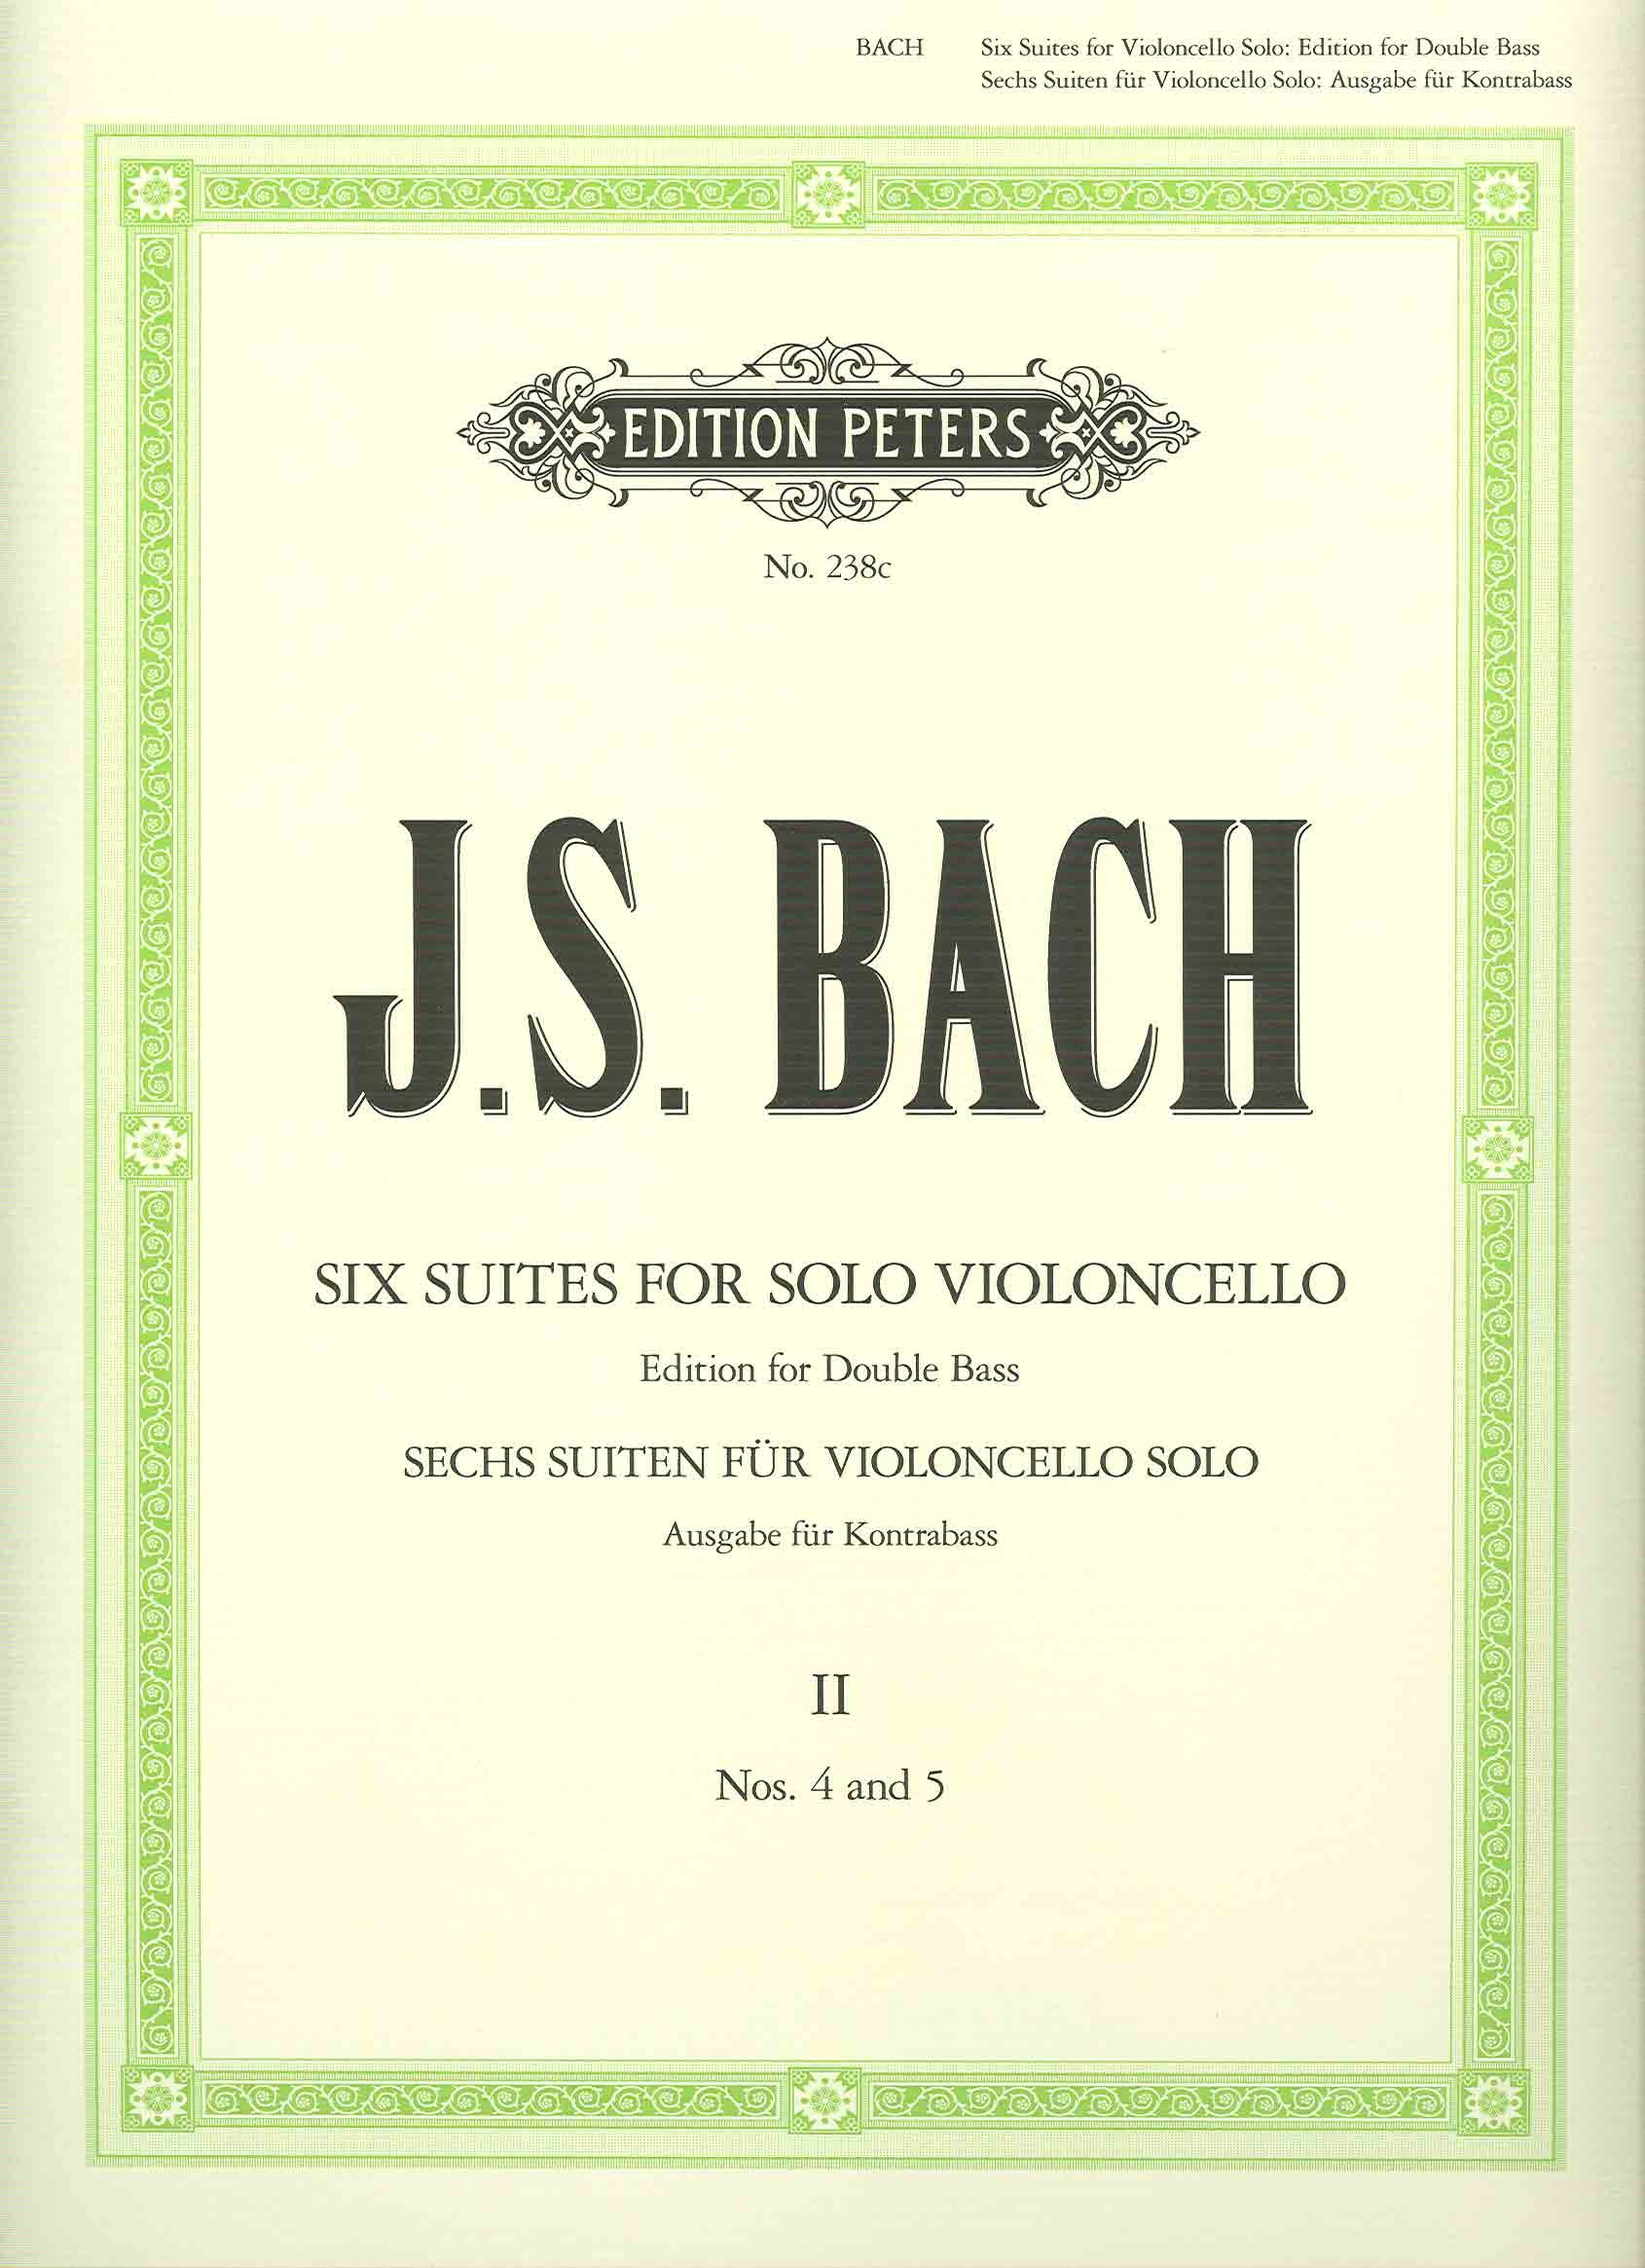 Six Suites for Solo Violincello: Edition for Double Bass), Vol. 2 (No. 4 and 5) pdf